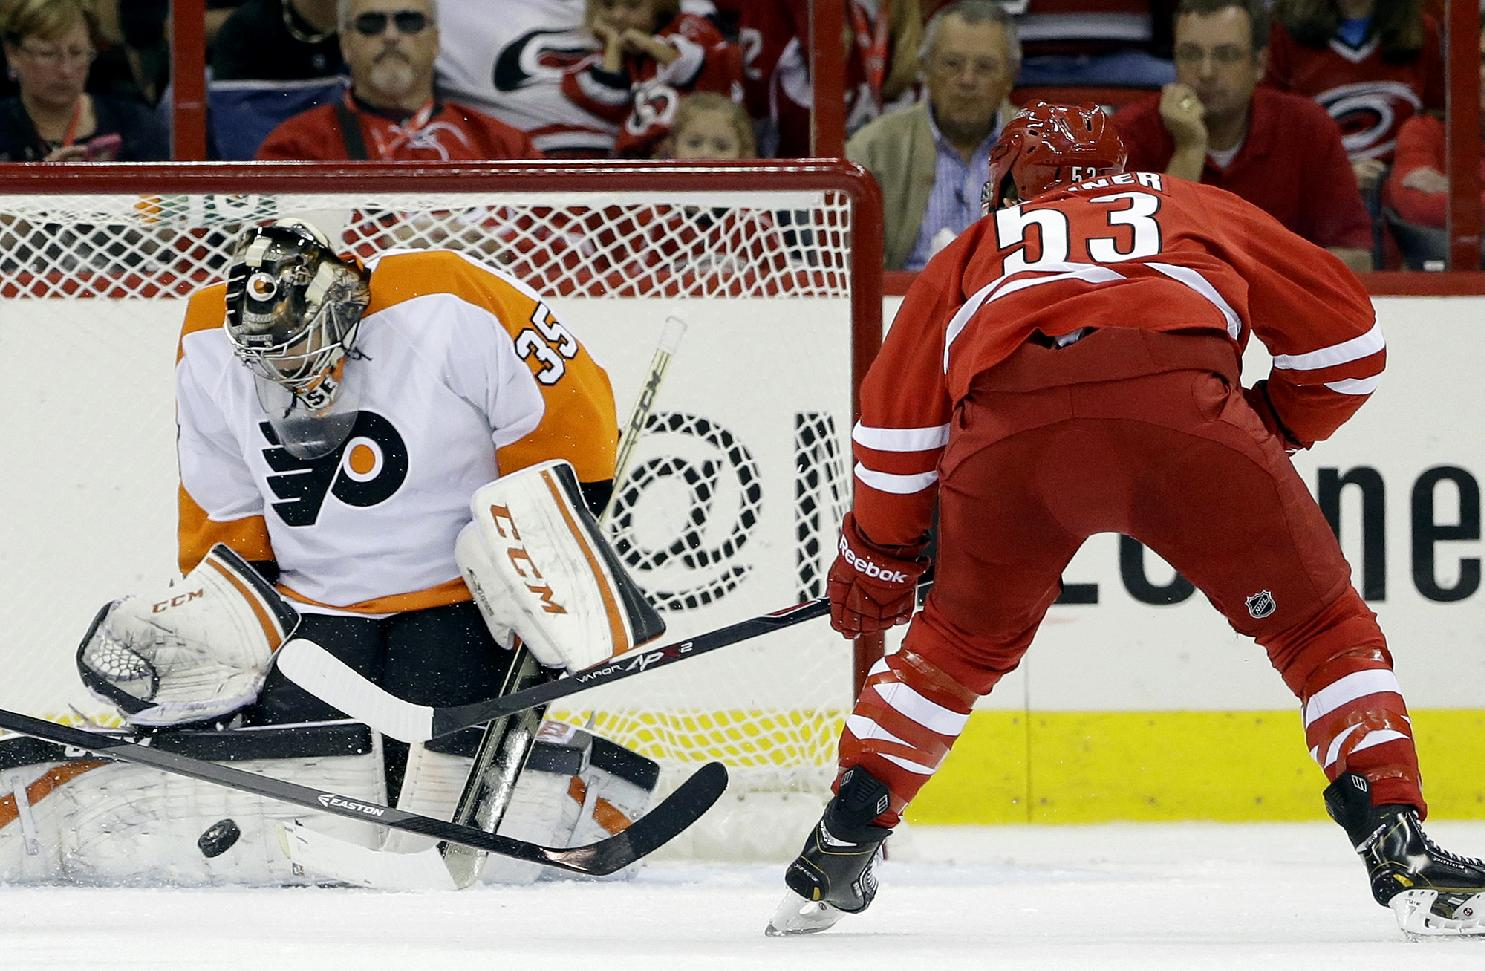 Philadelphia Flyers goalie Steve Mason (35) deflects a shot on goal by Carolina Hurricanes' Jeff Skinner (53)during the first period of an NHL hockey game in Raleigh, N.C., Sunday, Oct. 6, 2013